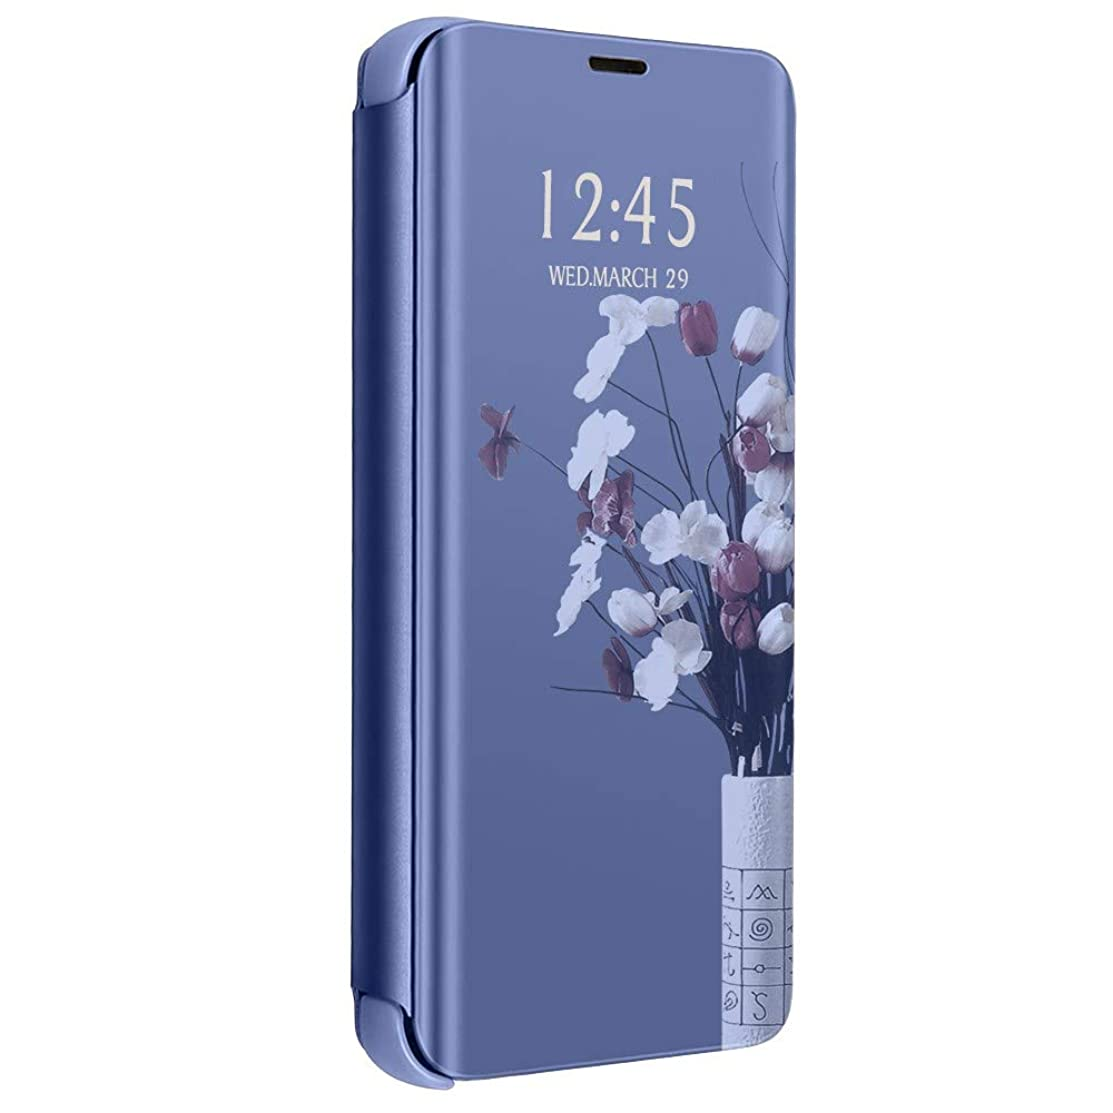 Slim Samsung Galaxy S10 Plus Case, Translucent View Window Front Function Mirror Screen Flip Electroplate Plating Stand Full Body Protective Case for Galaxy S10 Lite (Blue, Samsung Galaxy S10 Lite)